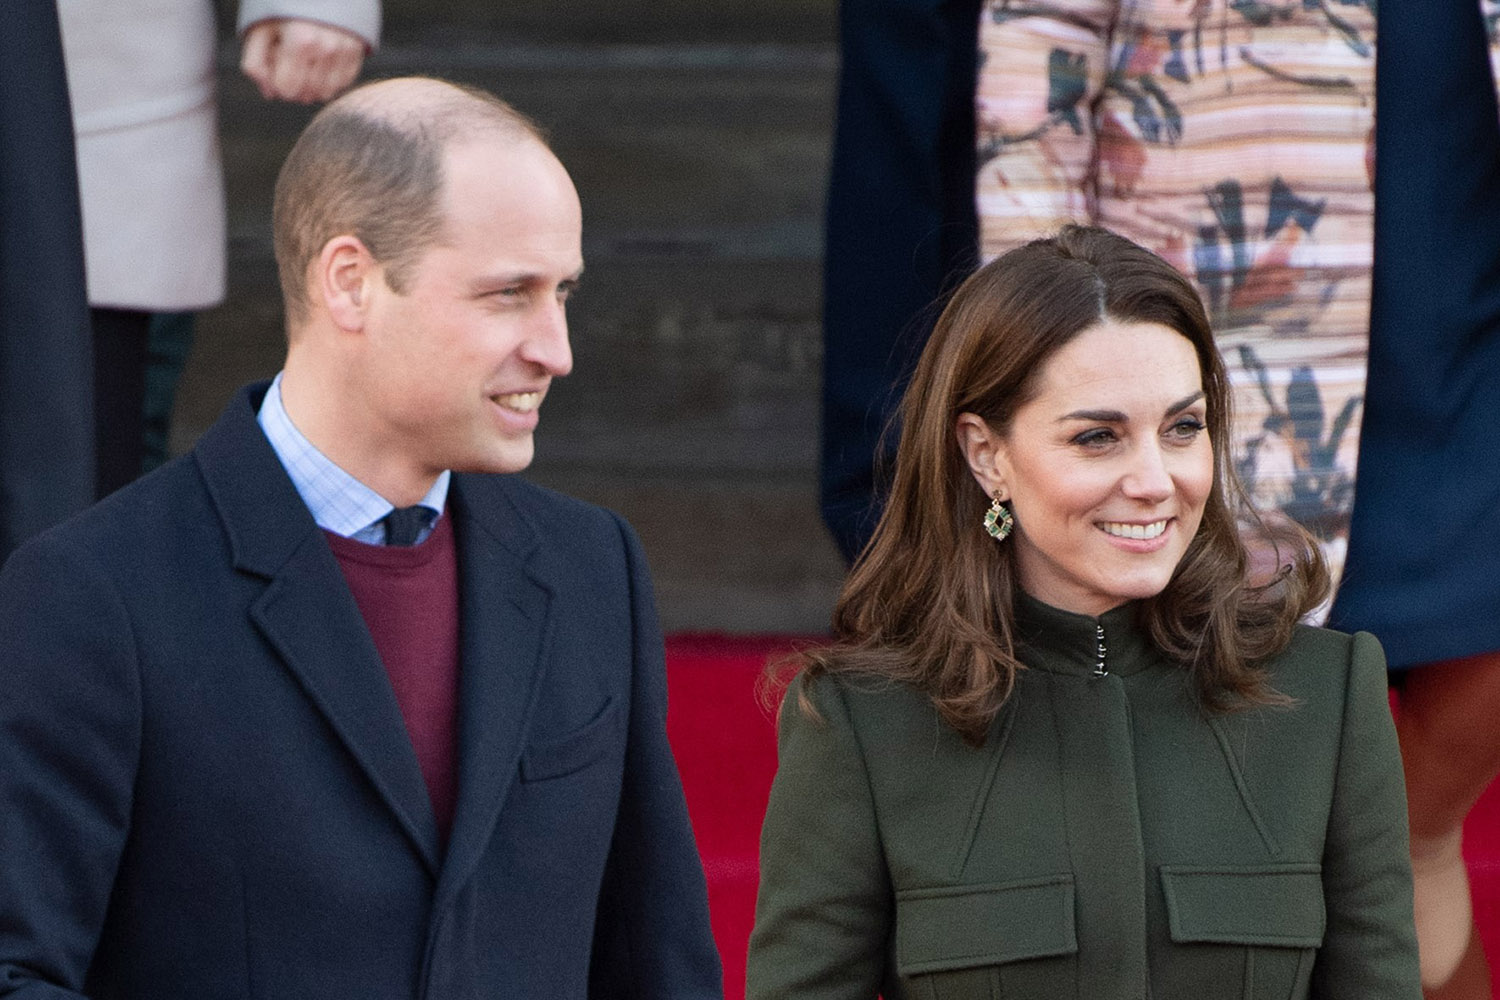 William and Kate change social media profile pictures in tribute to frontline workers